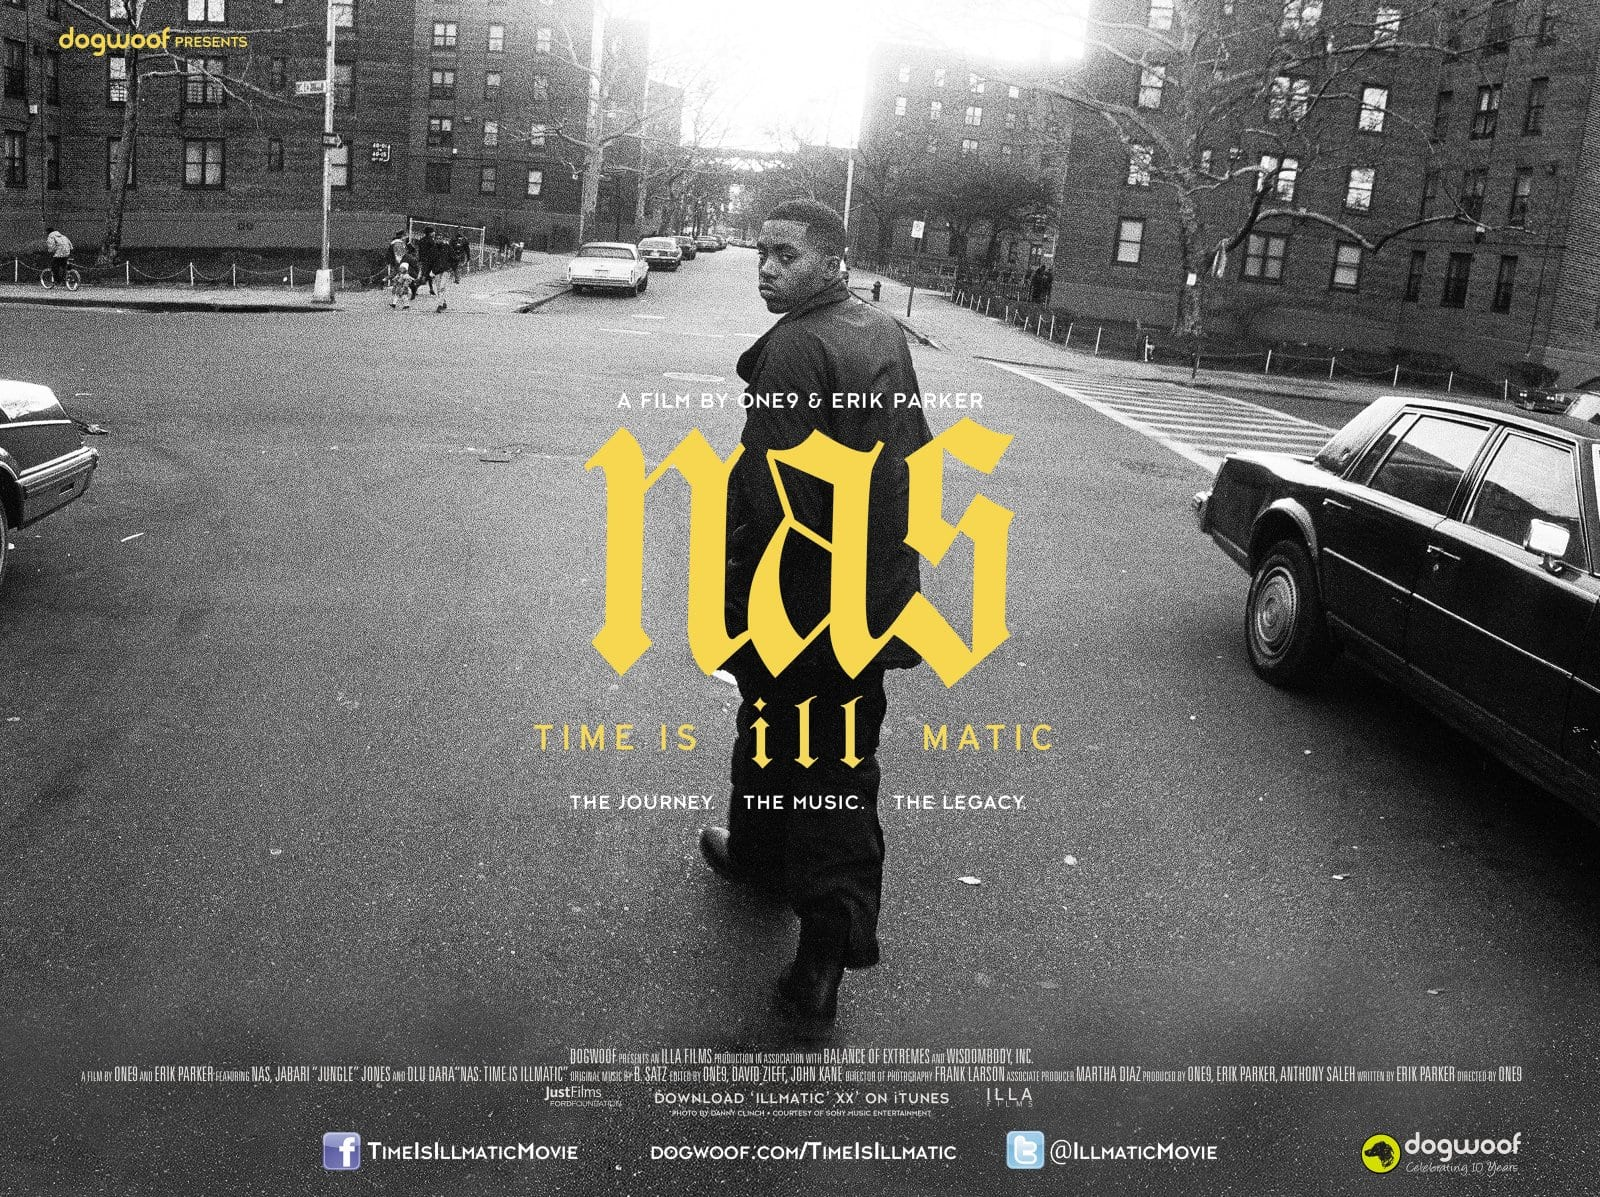 Nas_Time_Is_Illmatic_Dogwoof_Documentary_1600_1197_85